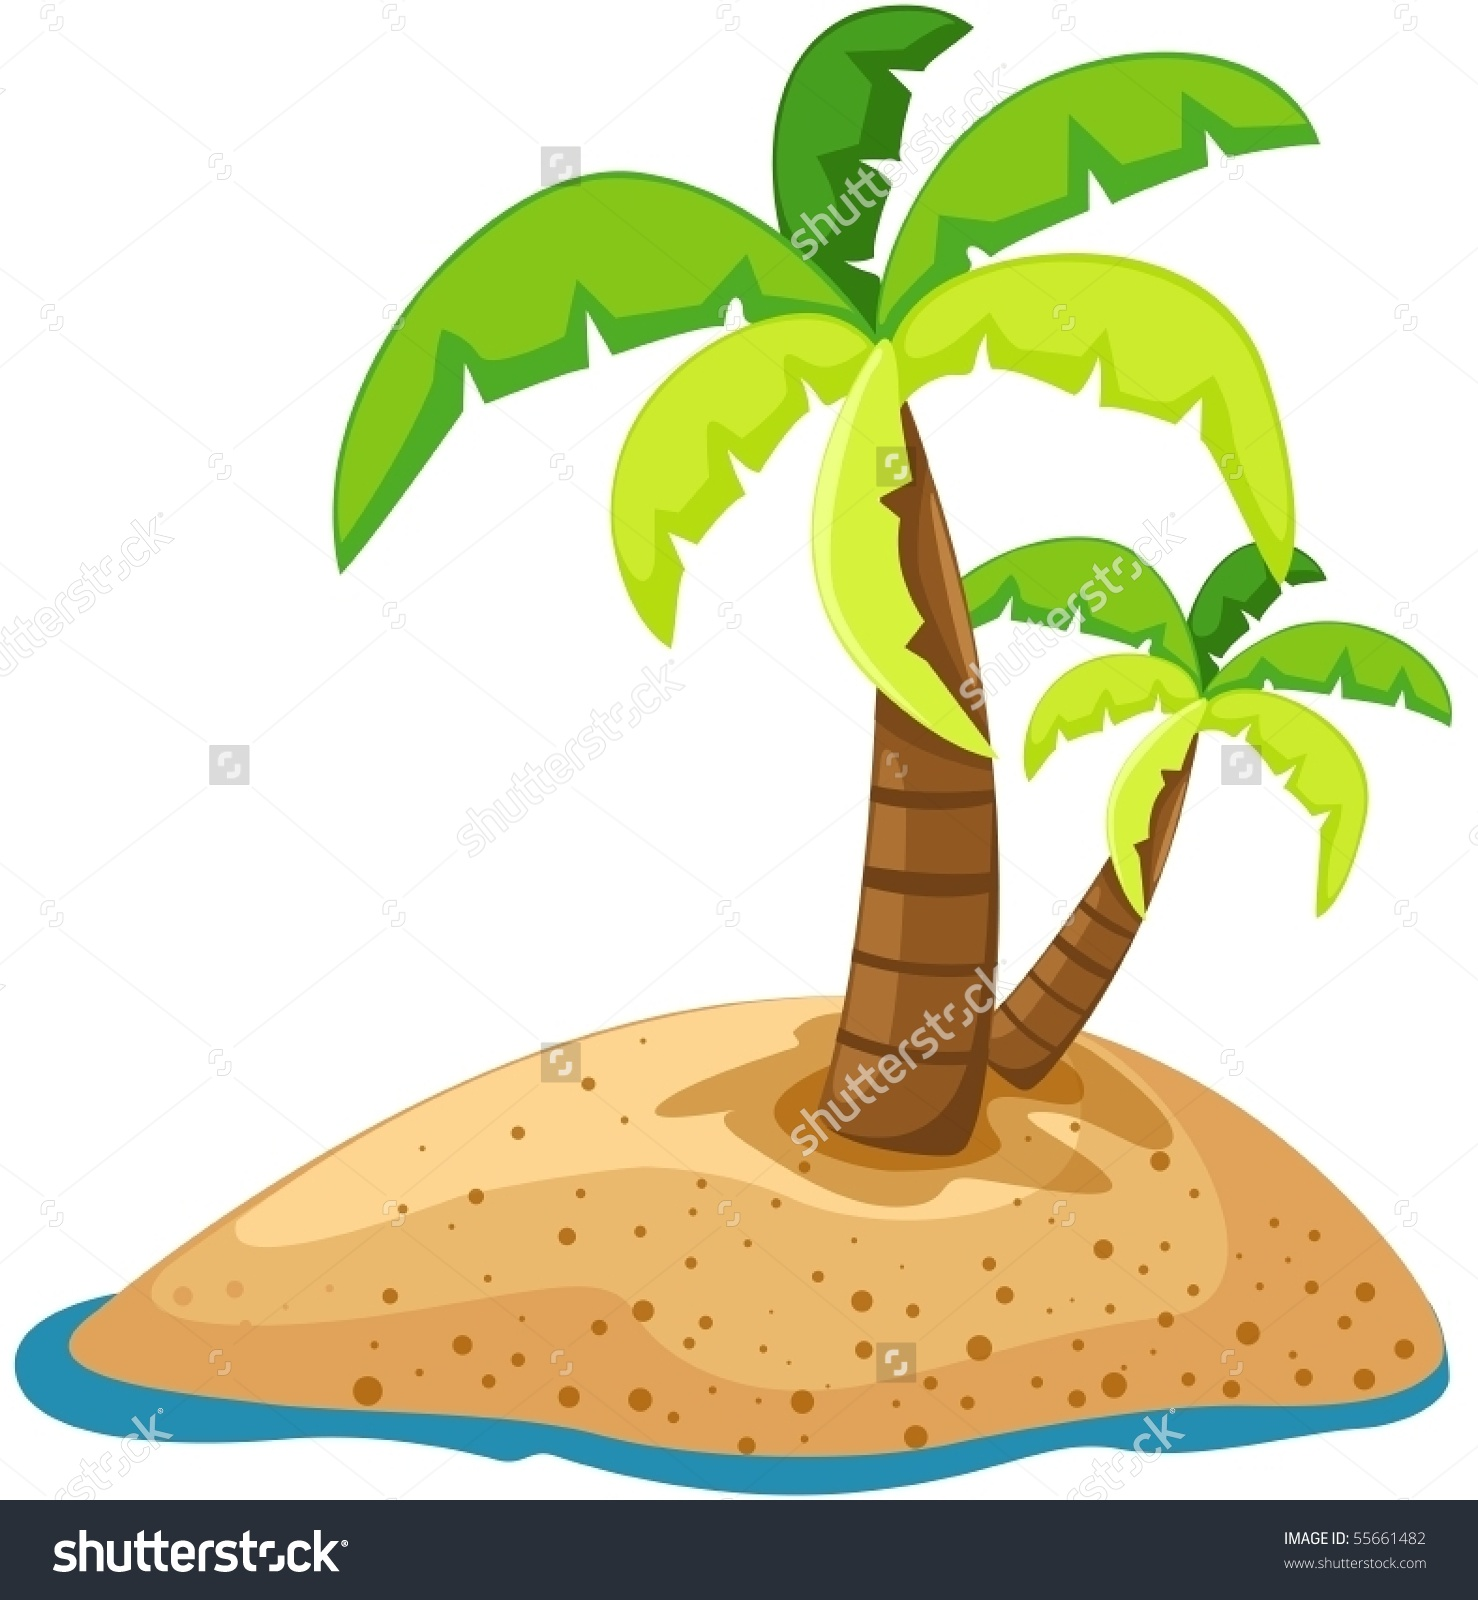 Clipart Desert Island Palm Tree.